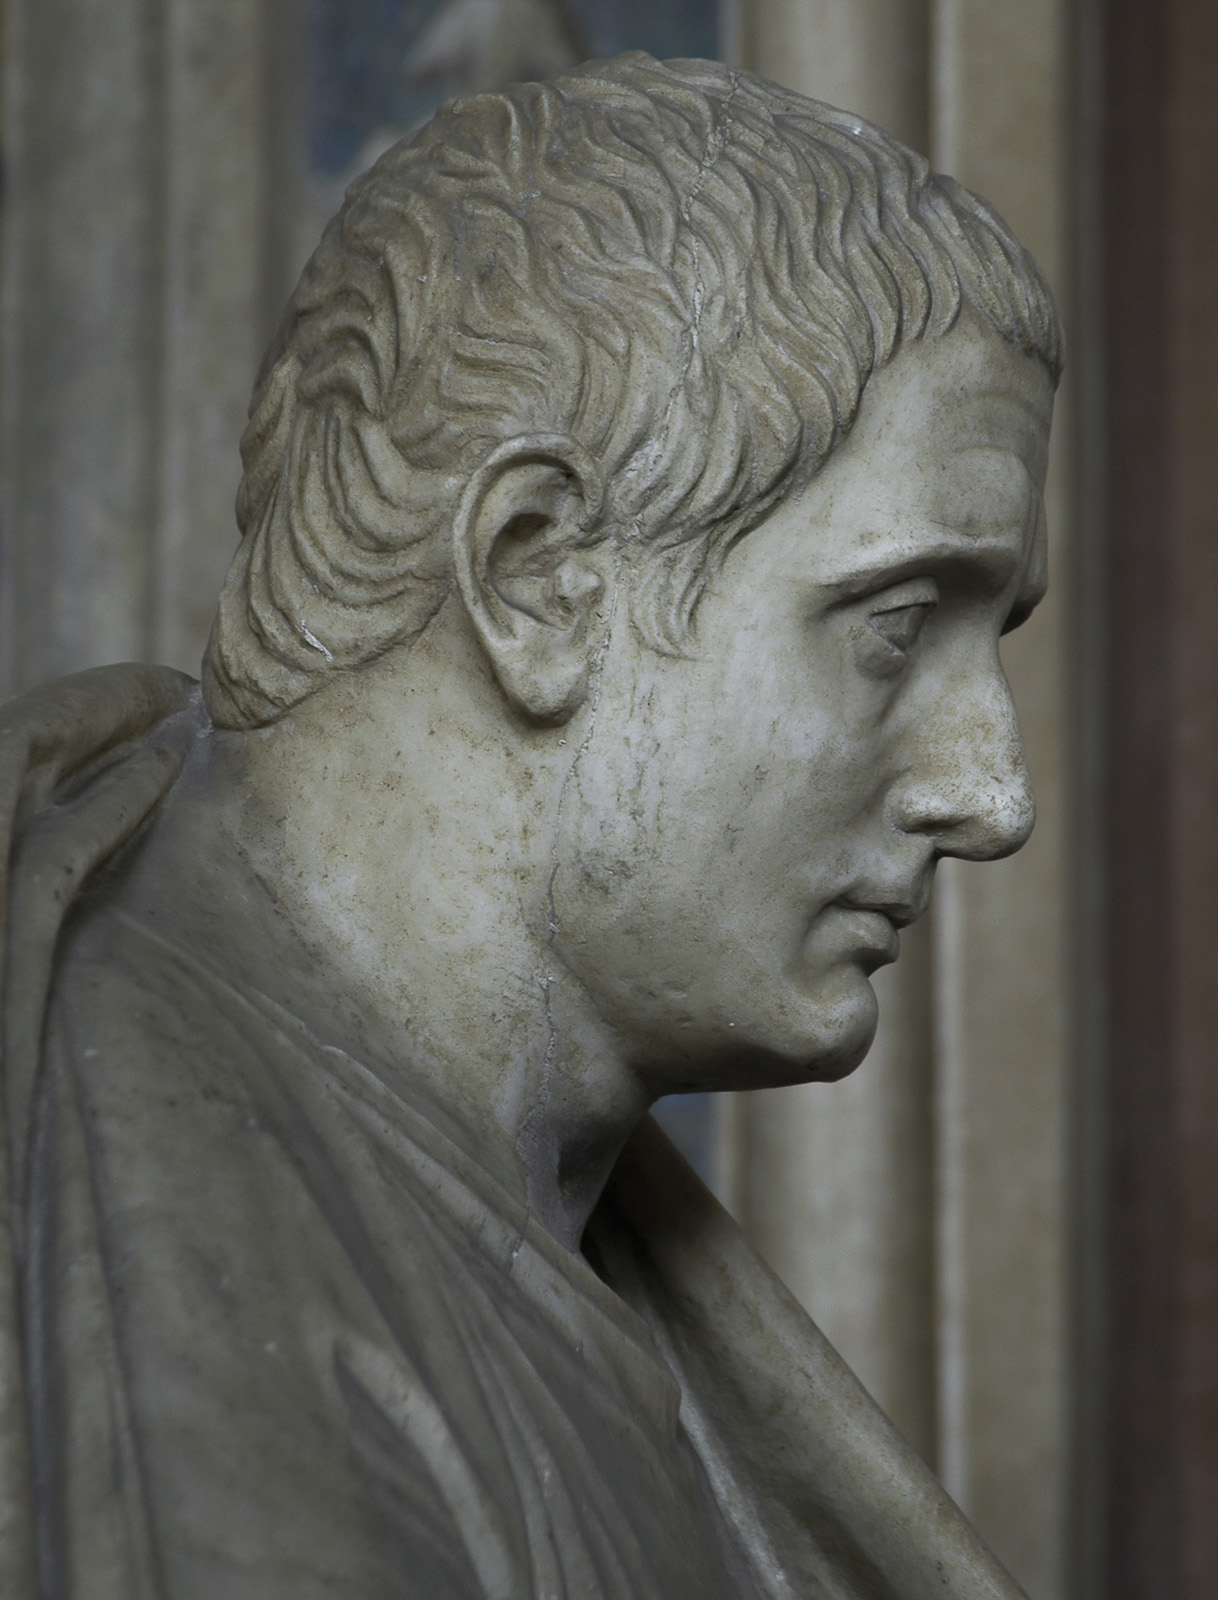 Posidippus. Marble. Roman copy of the 1st century CE of the Greek original of mid-3rd cent. BCE. Inv. No. 735. Rome, Vatican Museums, Pius-Clementine Museum, Gallery of statues, 51